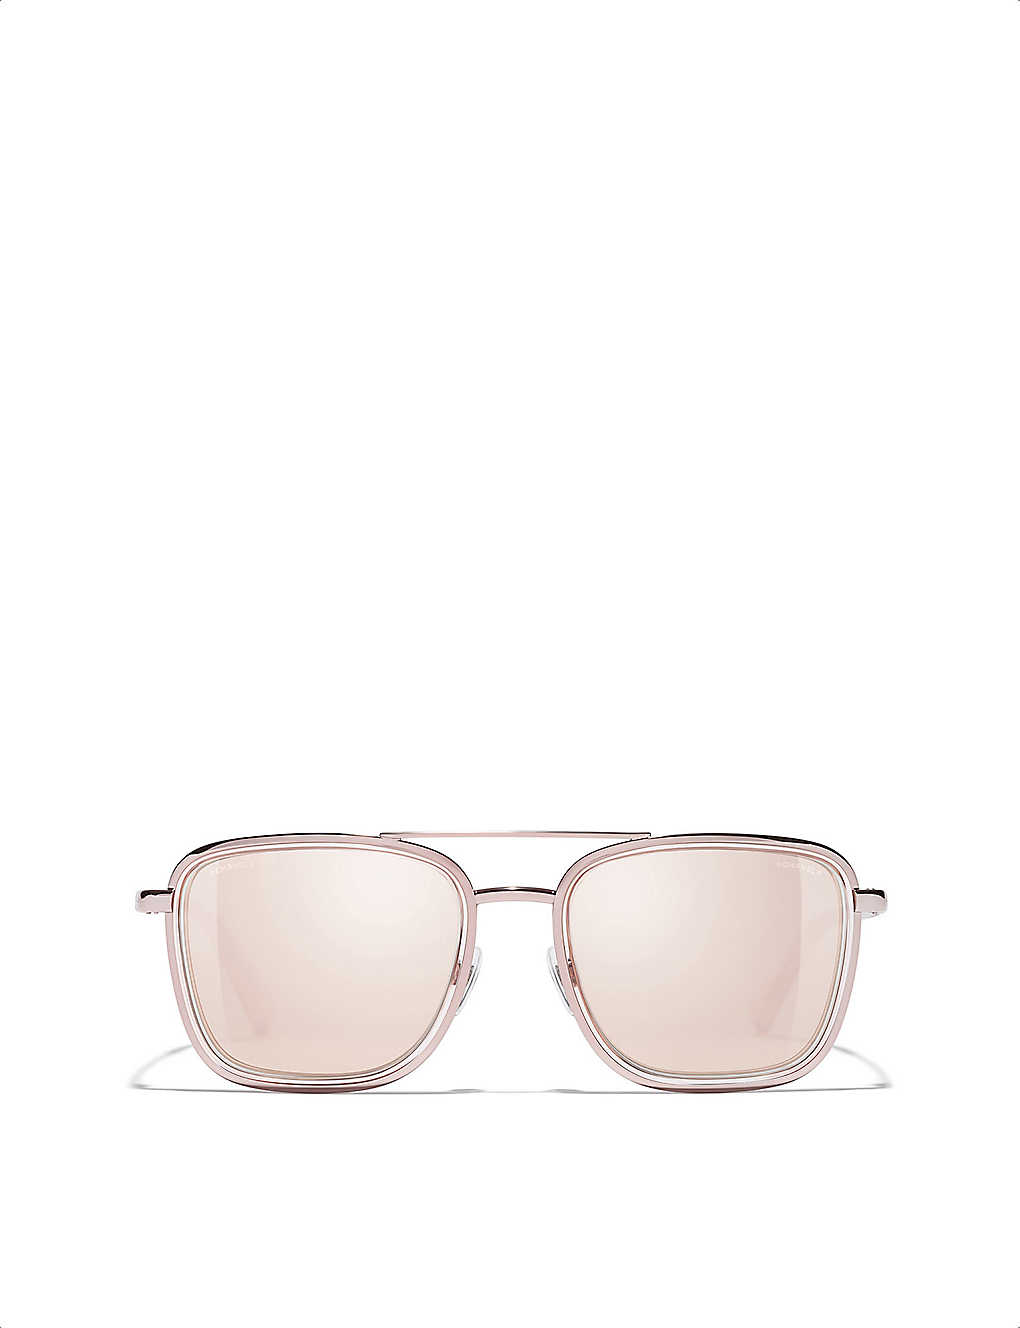 afcdb7b10cb CHANEL - 18-carat pink-gold plated metal sunglasses